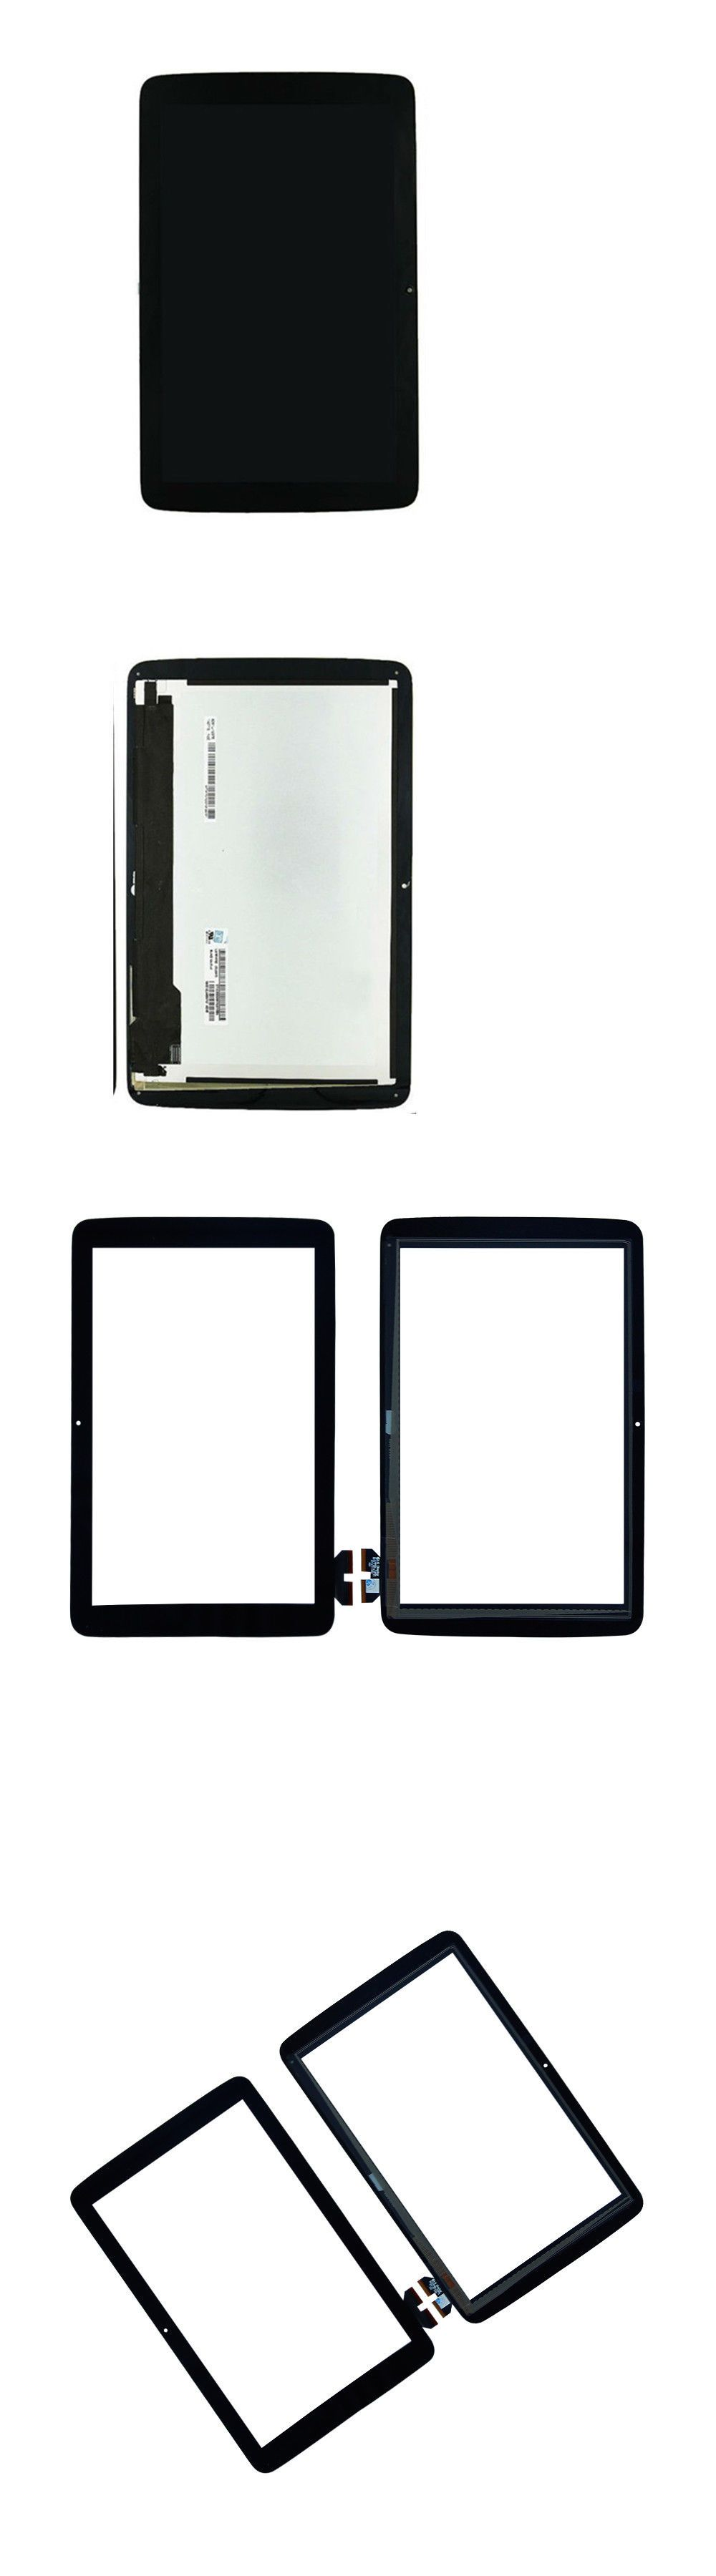 For LG G Pad 10.1/'/' V700 VK700 LCD Display Touch Screen Digitizer Assembly Part